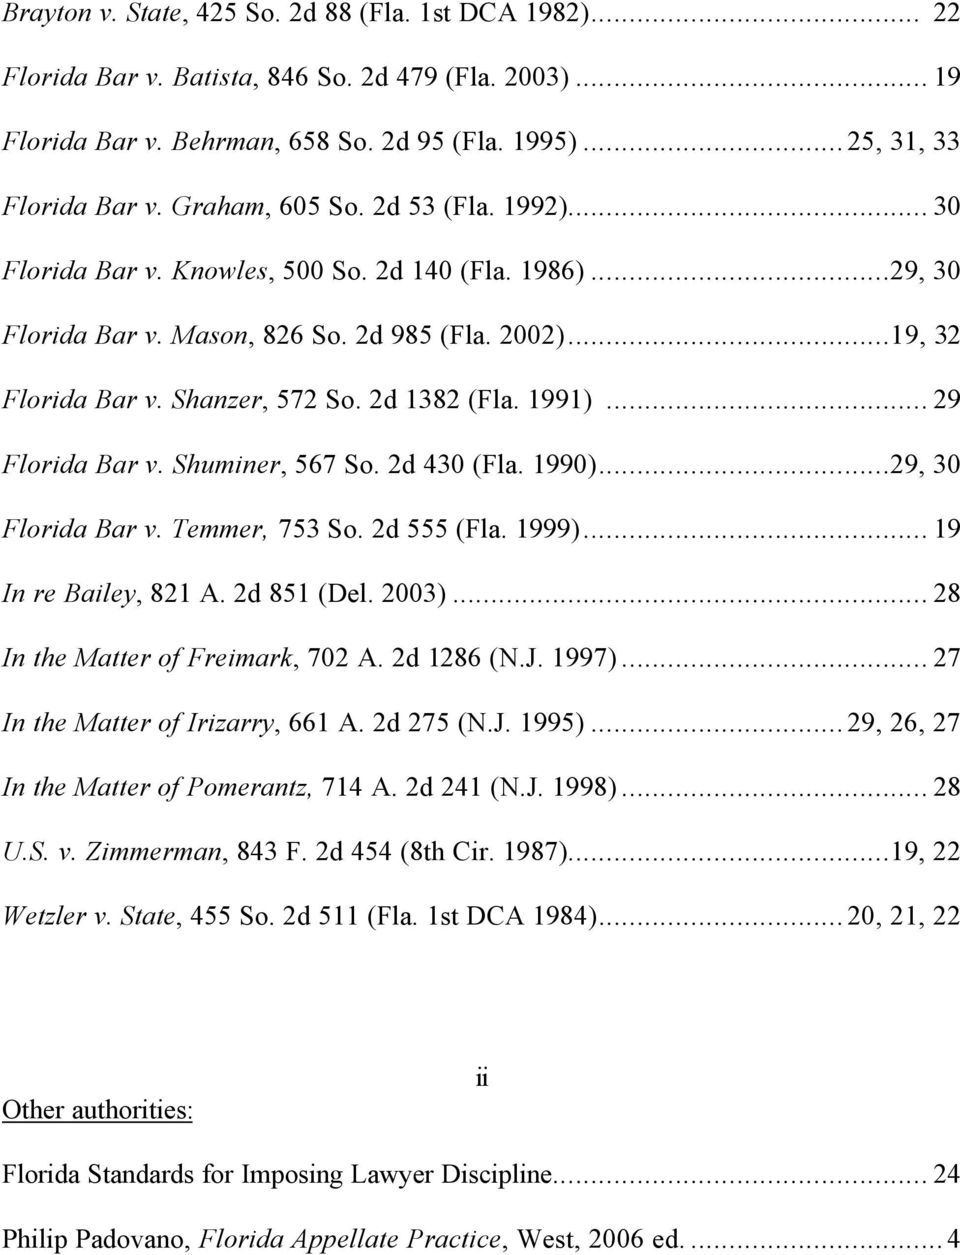 2d 1382 (Fla. 1991)... 29 Florida Bar v. Shuminer, 567 So. 2d 430 (Fla. 1990)...29, 30 Florida Bar v. Temmer, 753 So. 2d 555 (Fla. 1999)... 19 In re Bailey, 821 A. 2d 851 (Del. 2003).